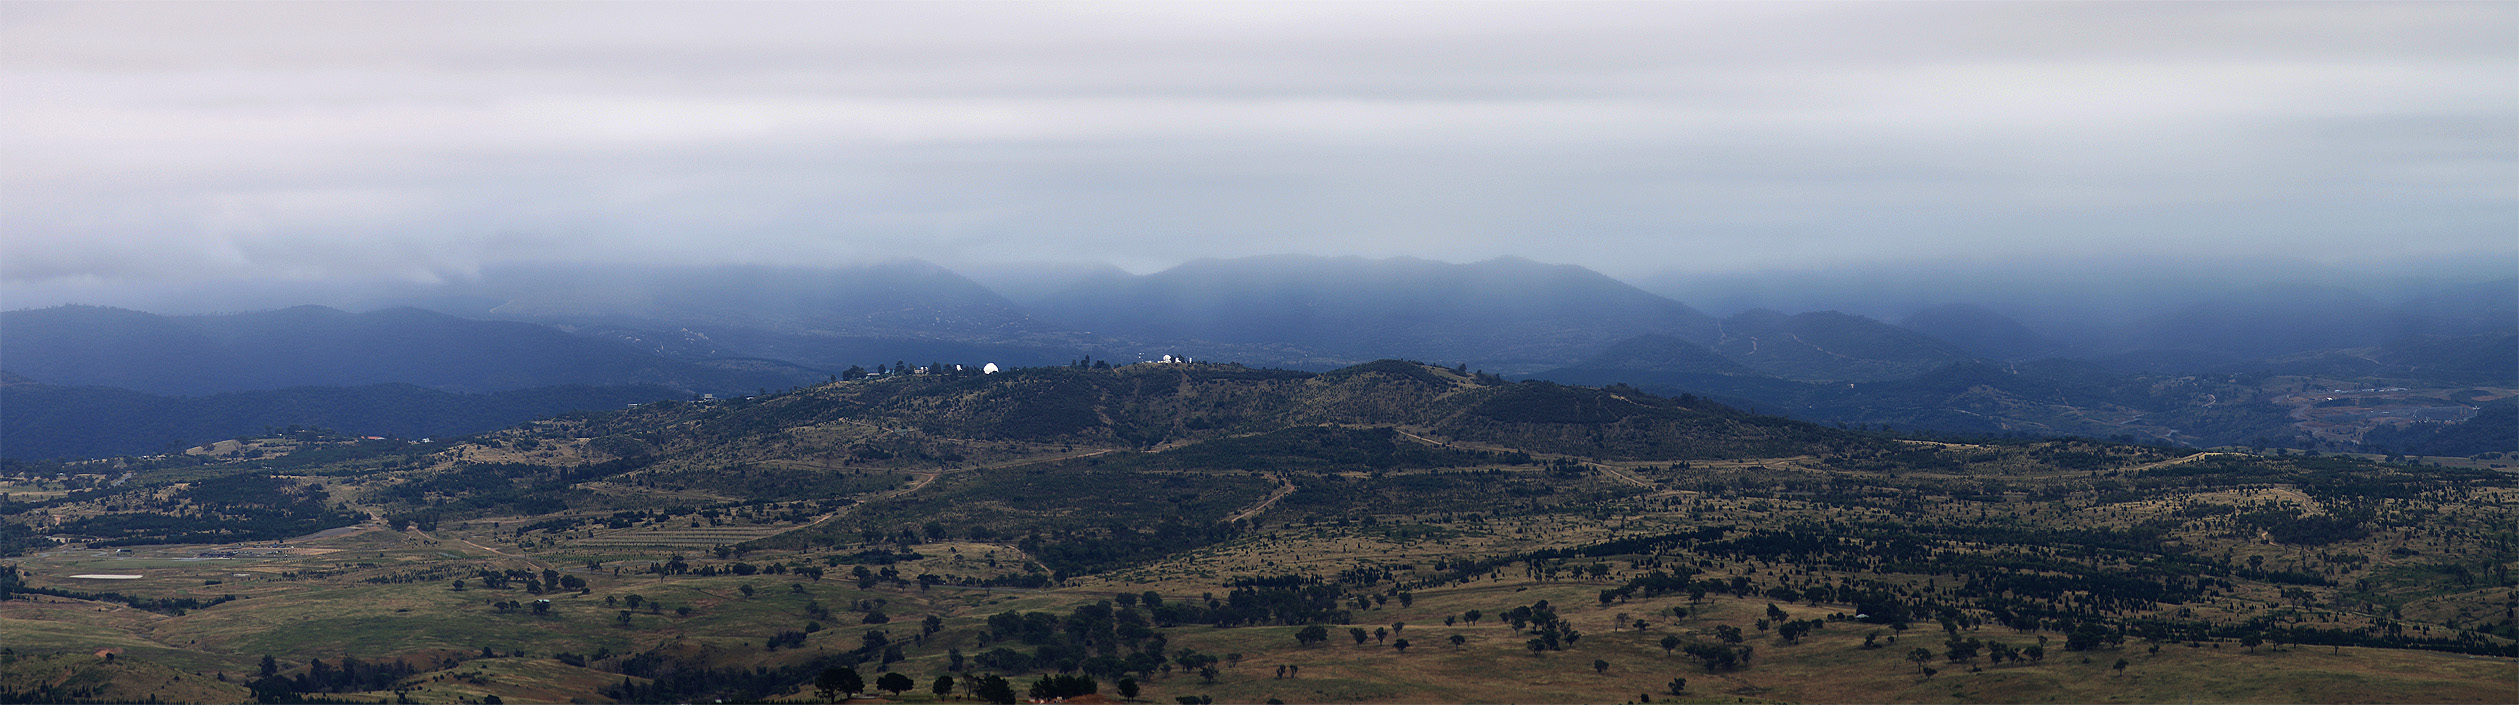 Mount Stromlo Observatory by Chrissyo